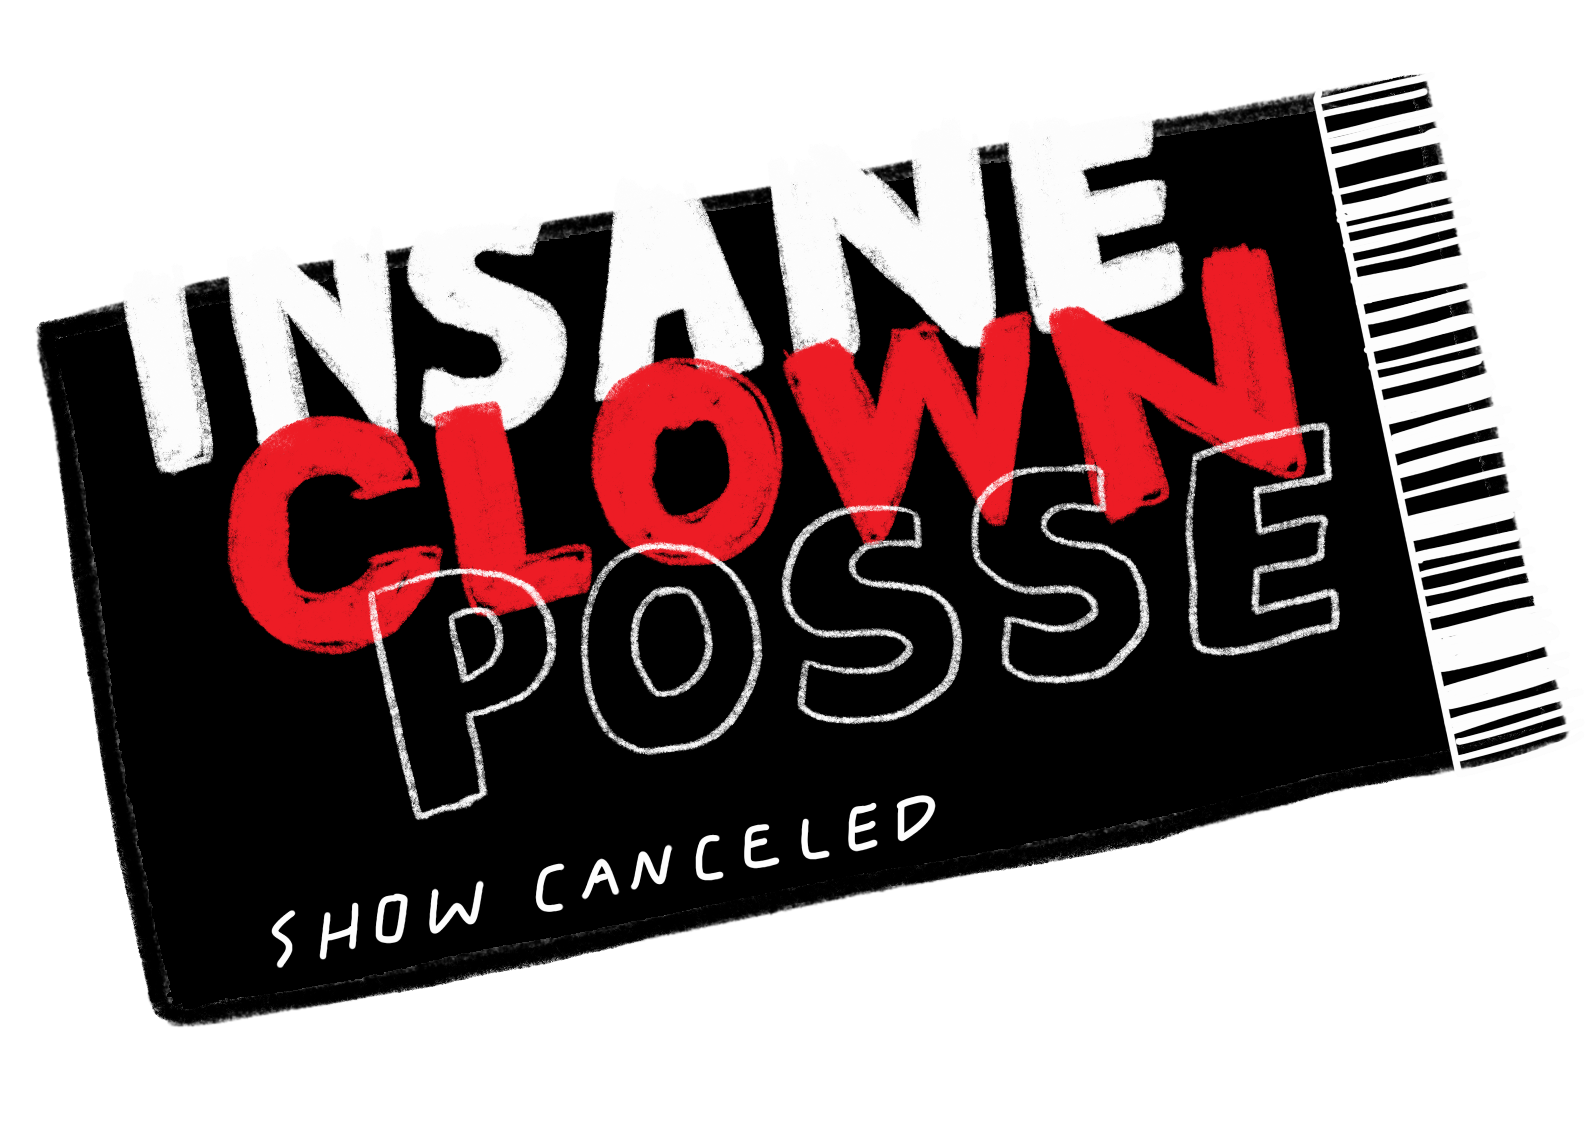 Insane clown posse png. The dark carnival that